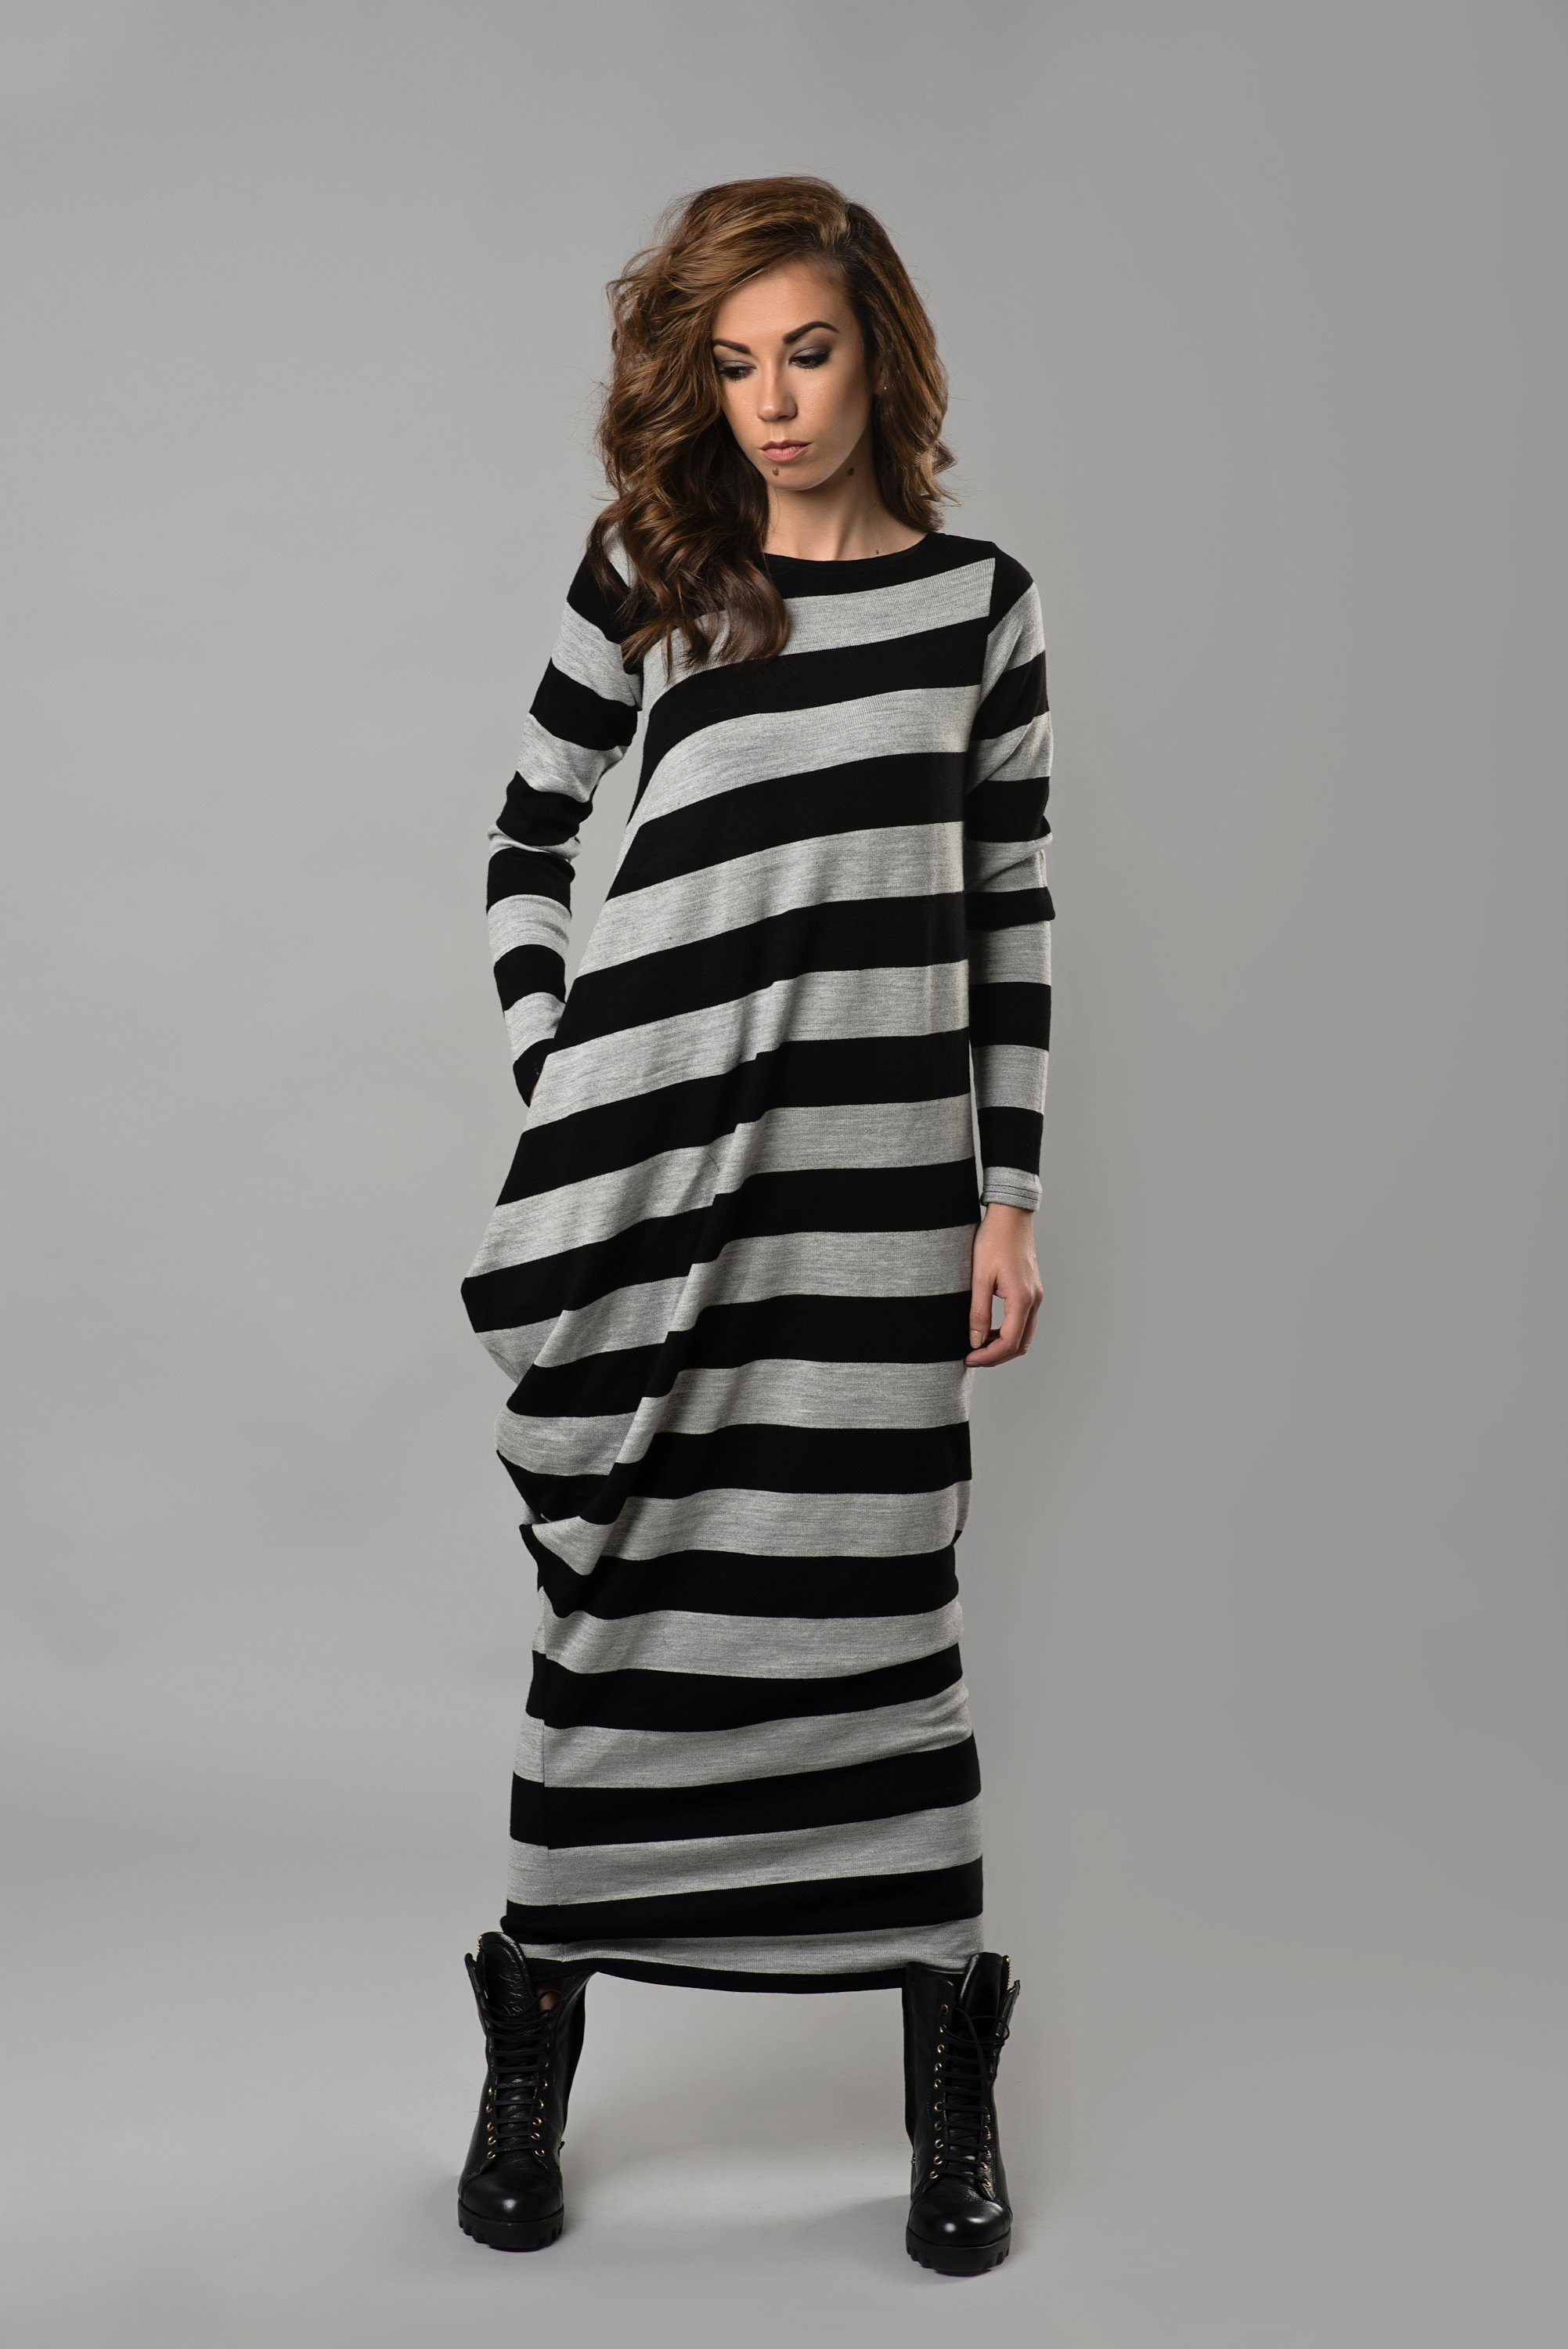 Women Long Dress, Maxi Dress, Stripe Dress, Gray Dress, Plus Size Clothing, Kaftan Dress, Plus Size Maxi Dress,Long Sleeve Dress,Loose Dress